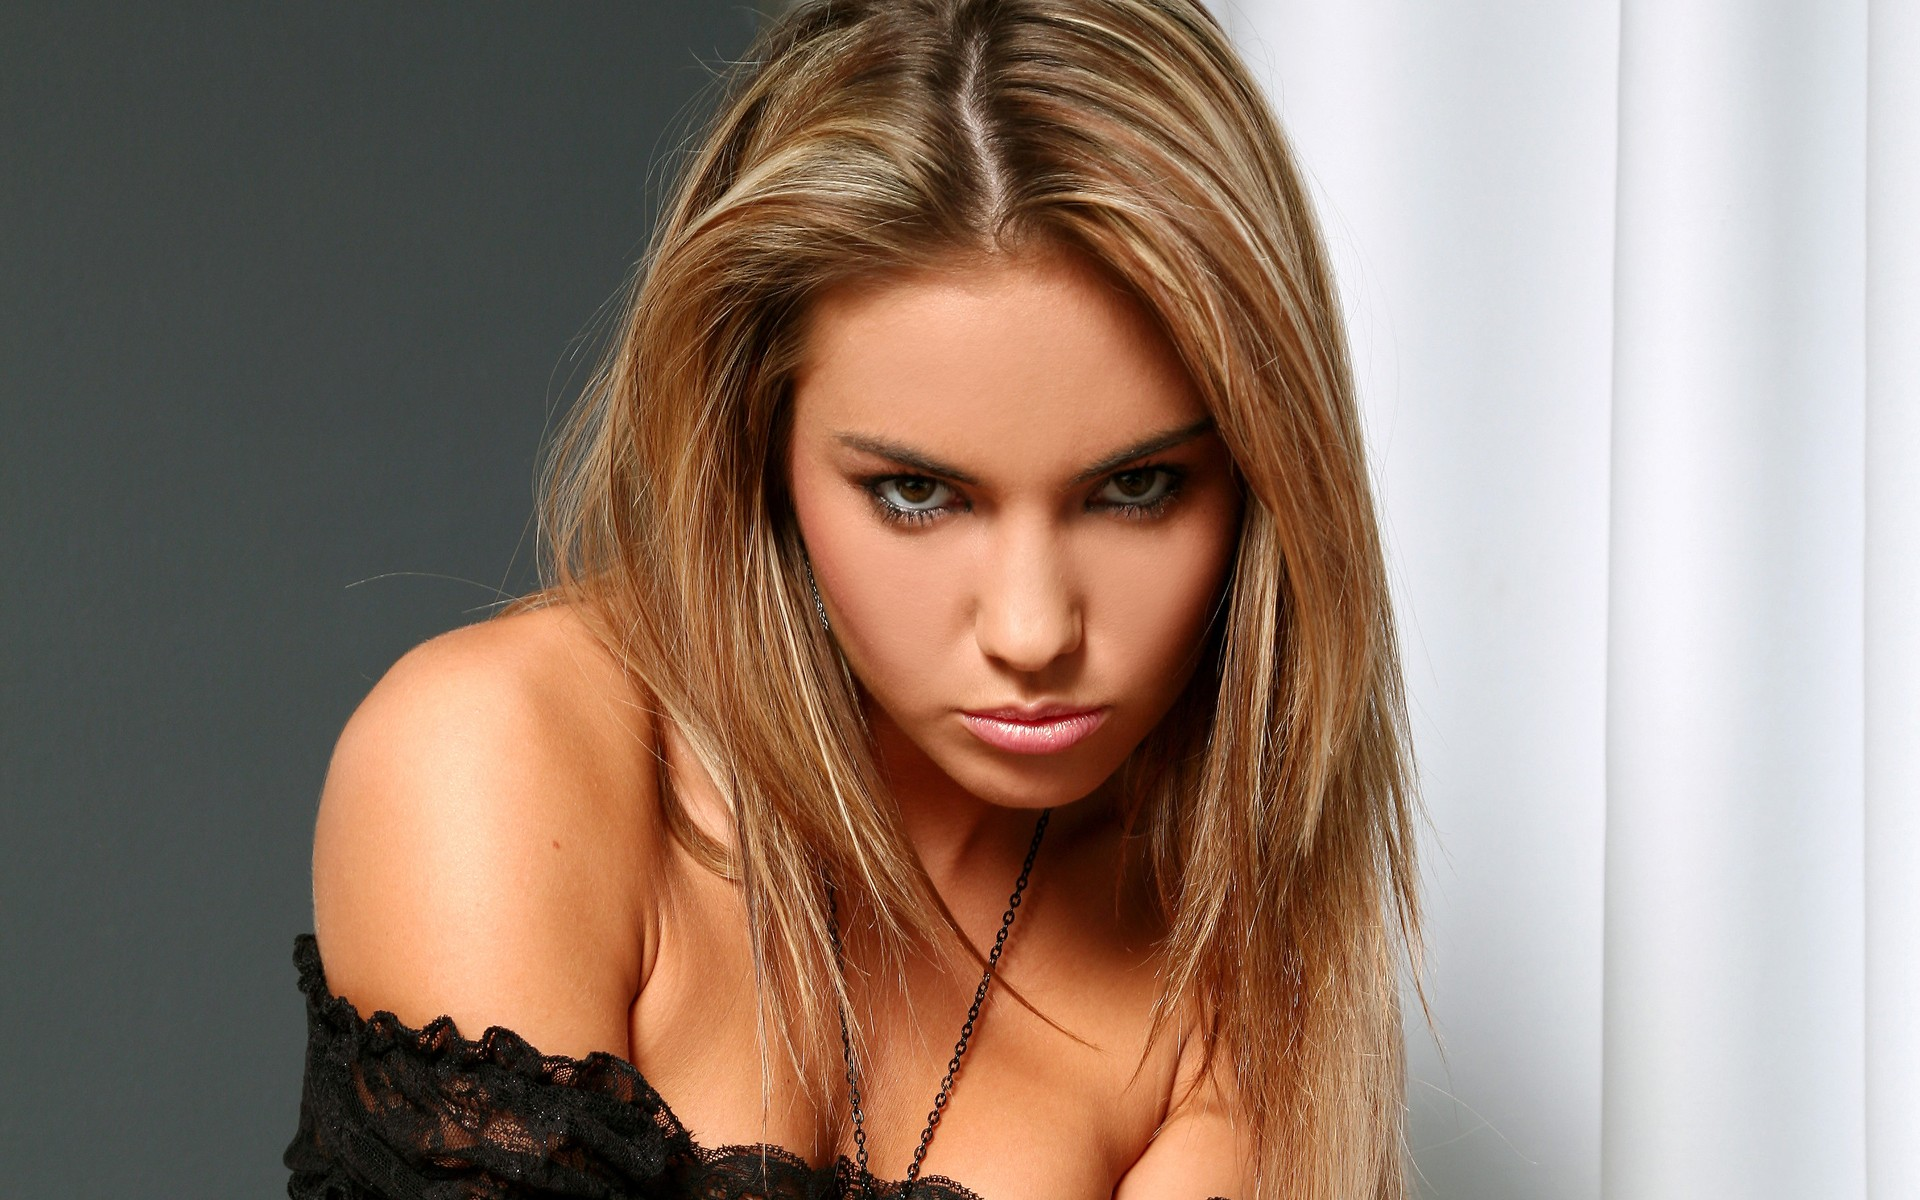 People 1920x1200 blonde pouting bare shoulders Veronika Fasterova pornstar face makeup sultry look women indoors indoors dyed hair looking at viewer